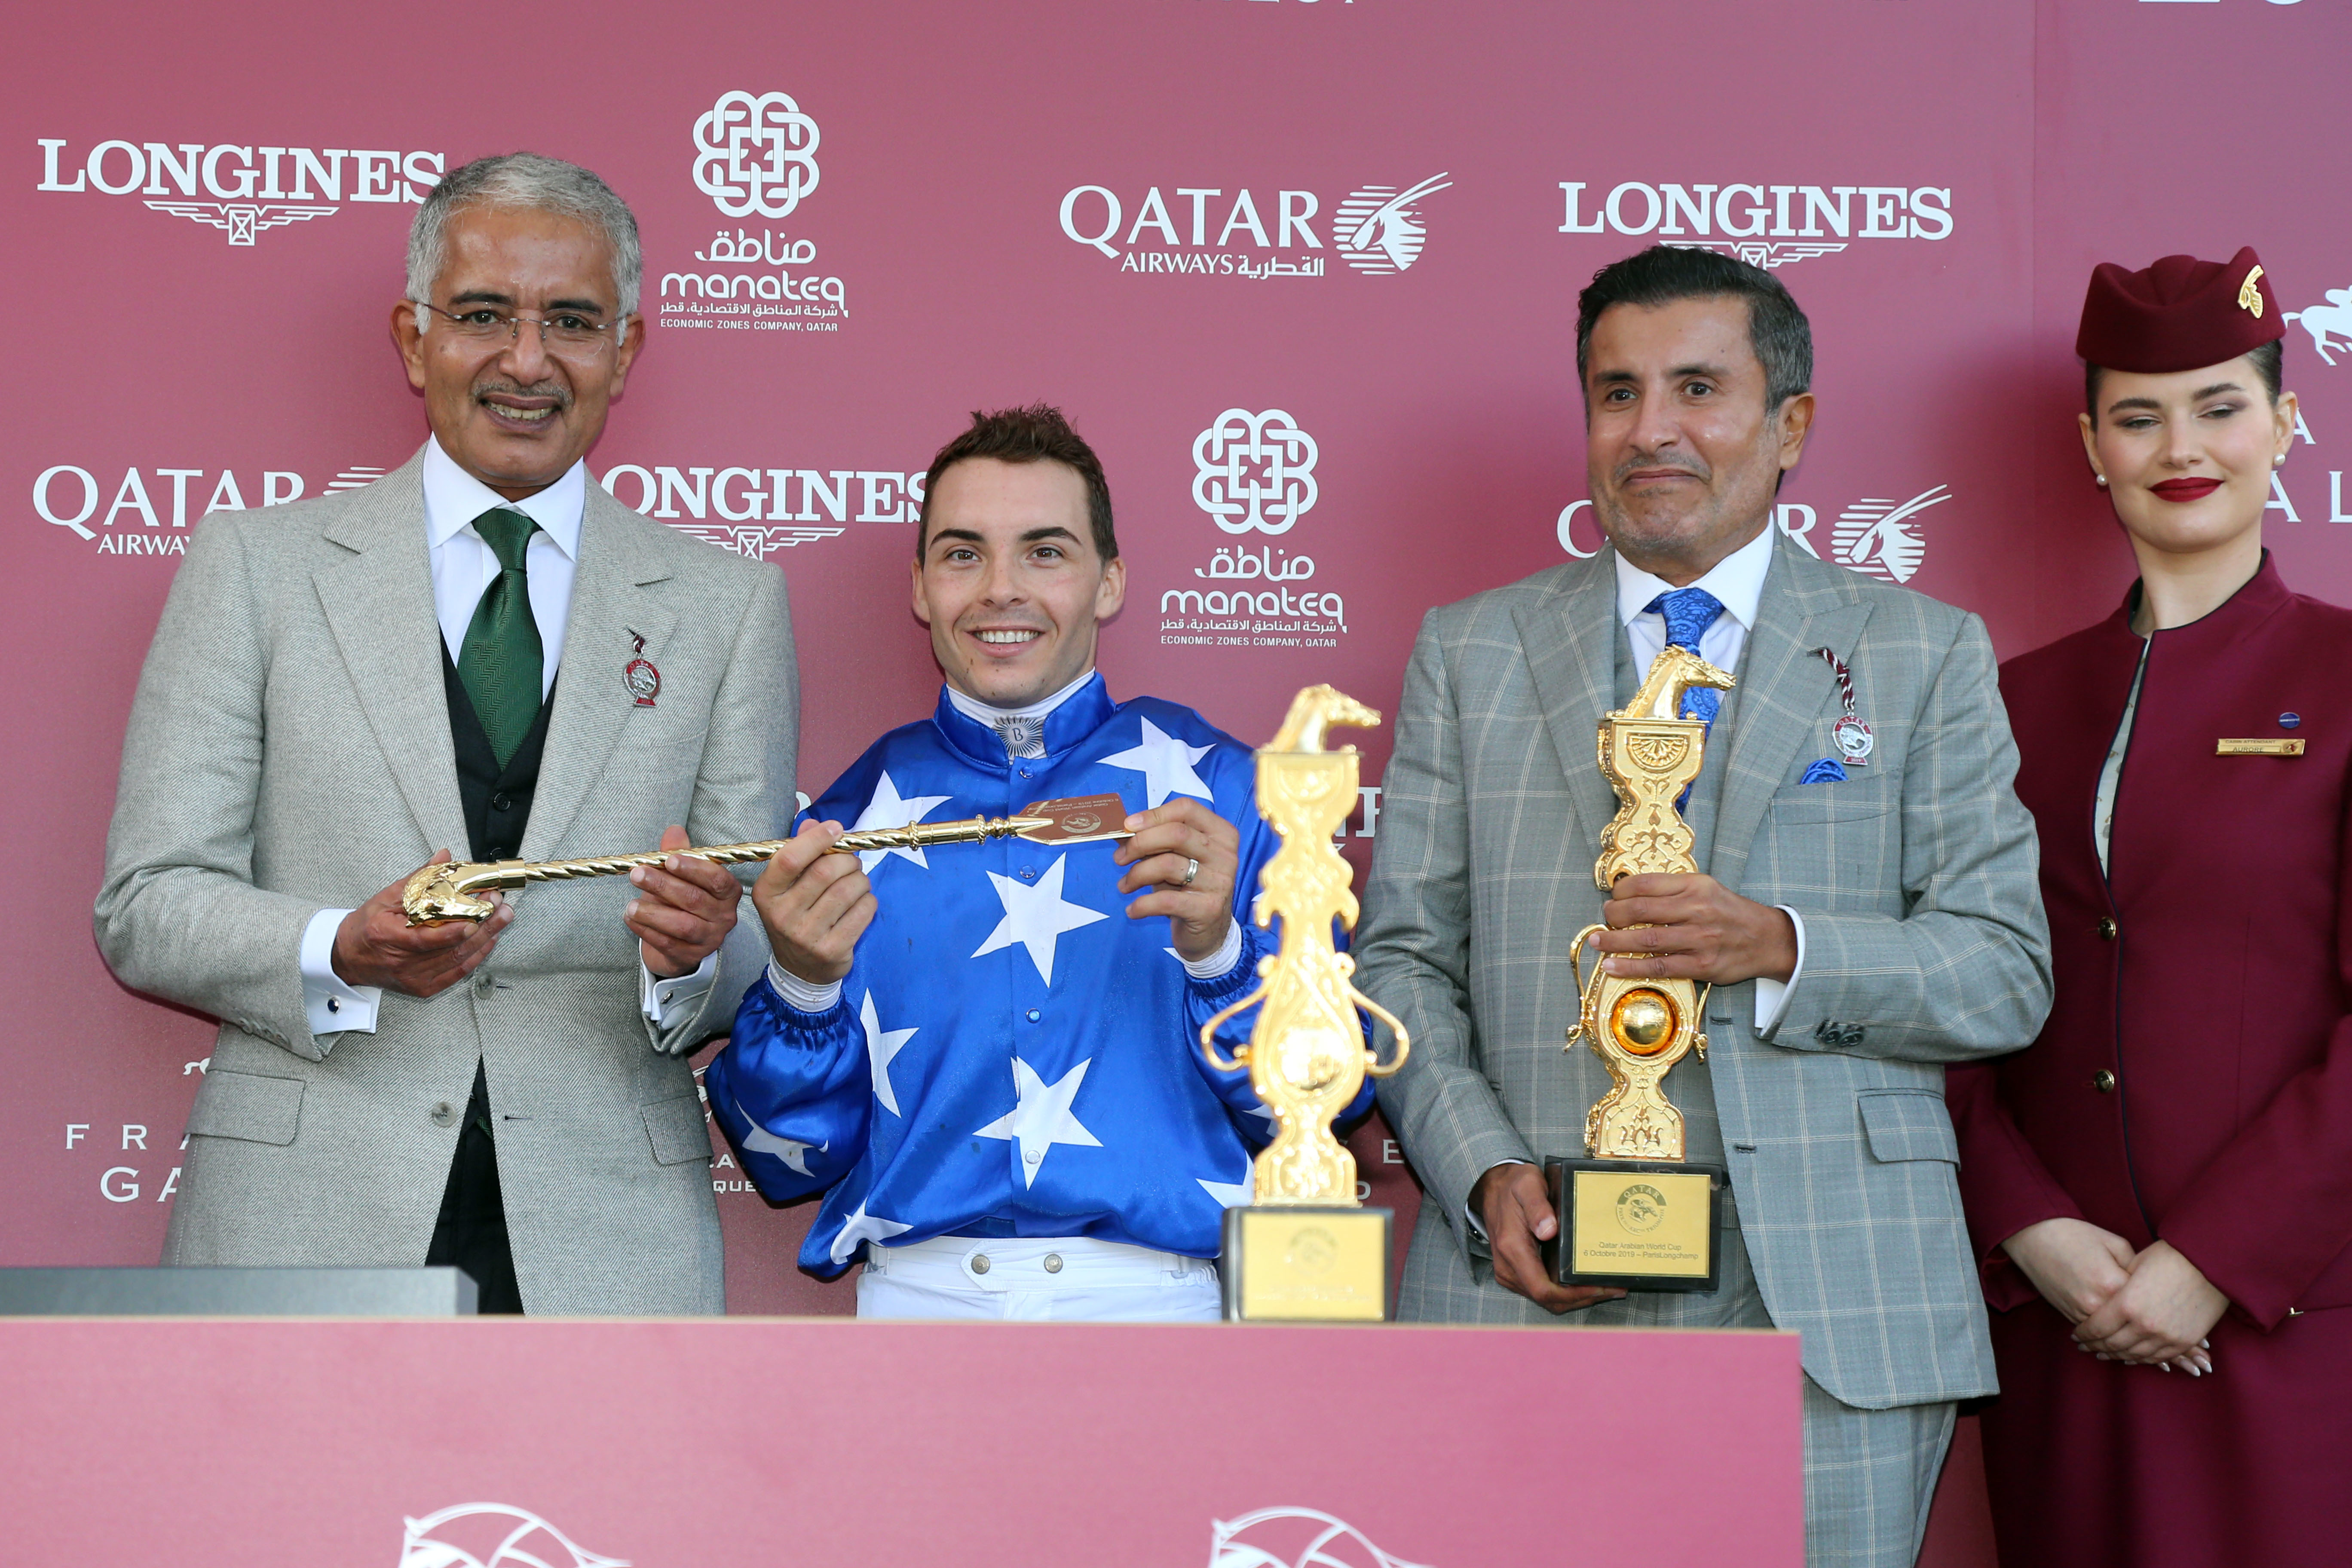 QATAR ARABIAN WORLD CUP - The class of Ebraz speaks loud and clear